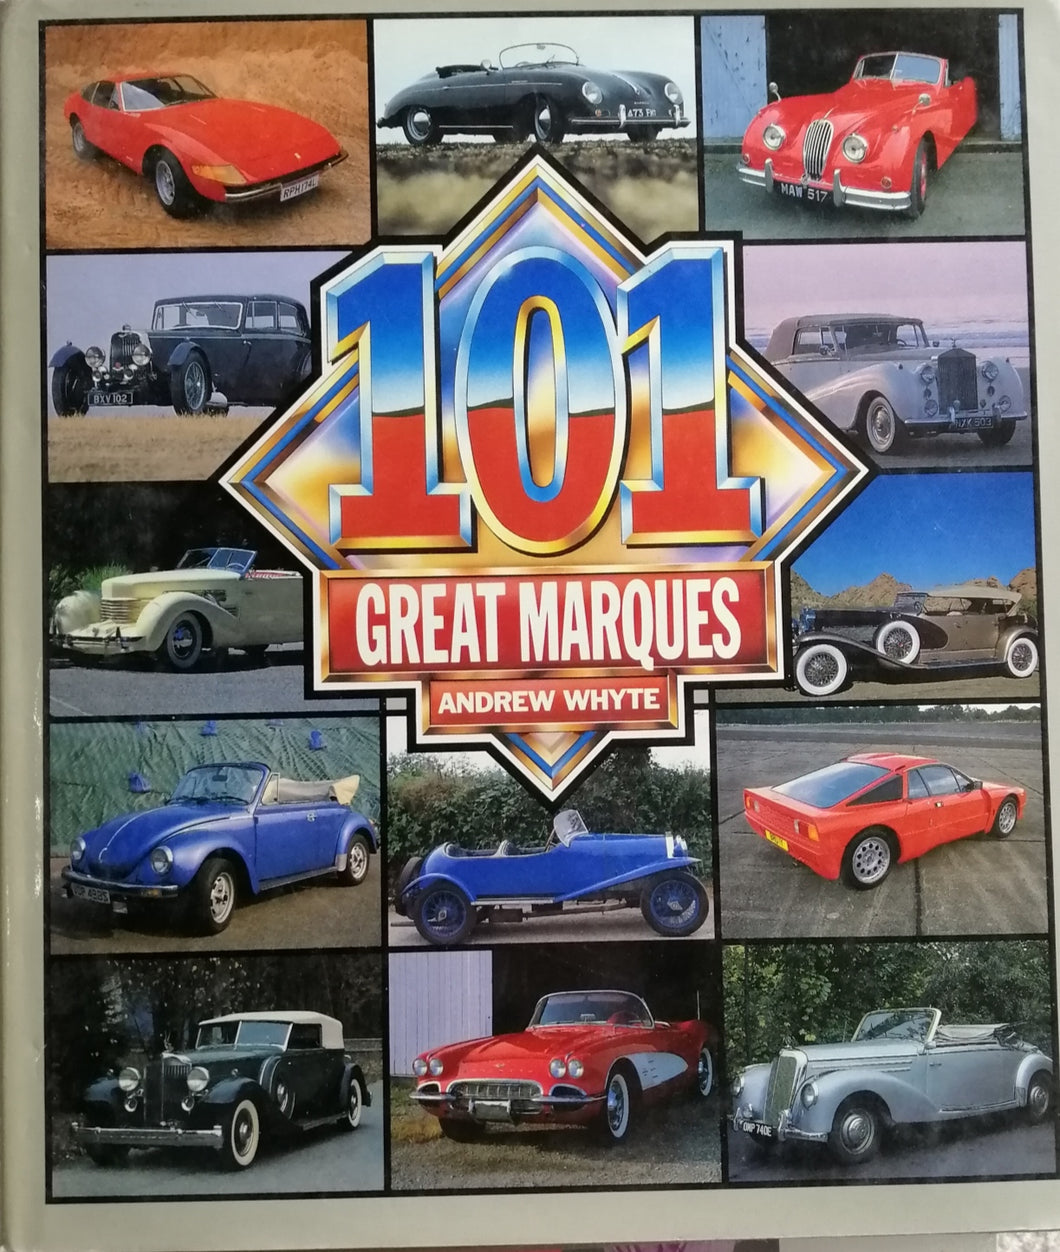 101 Great Marques by Andrew Whyte